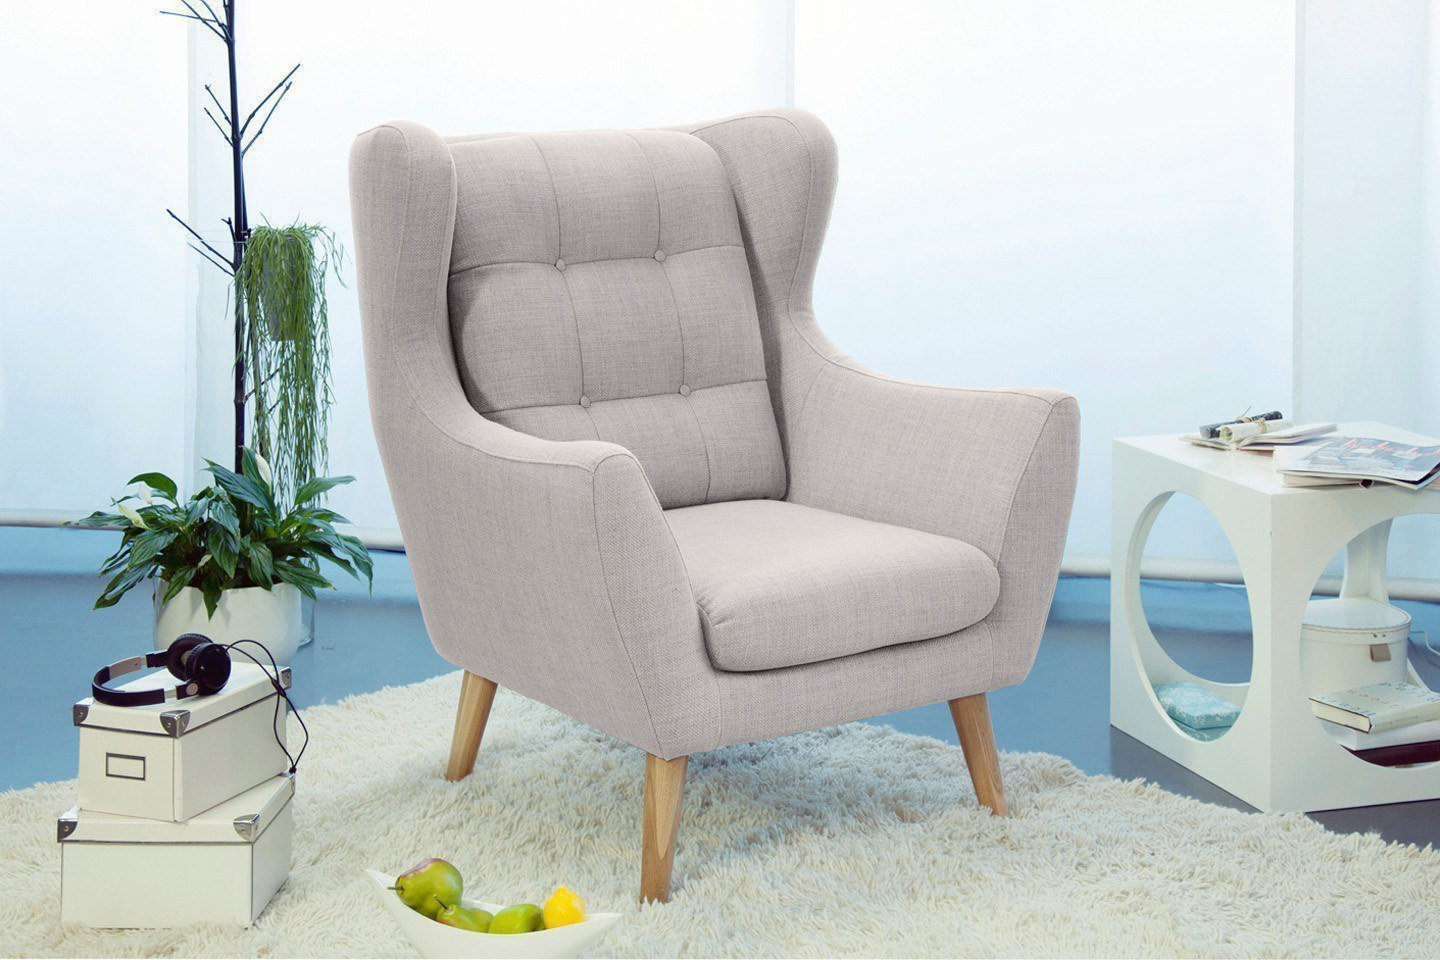 Lounge Sessel Henry Von New Look Loungesessel Creme